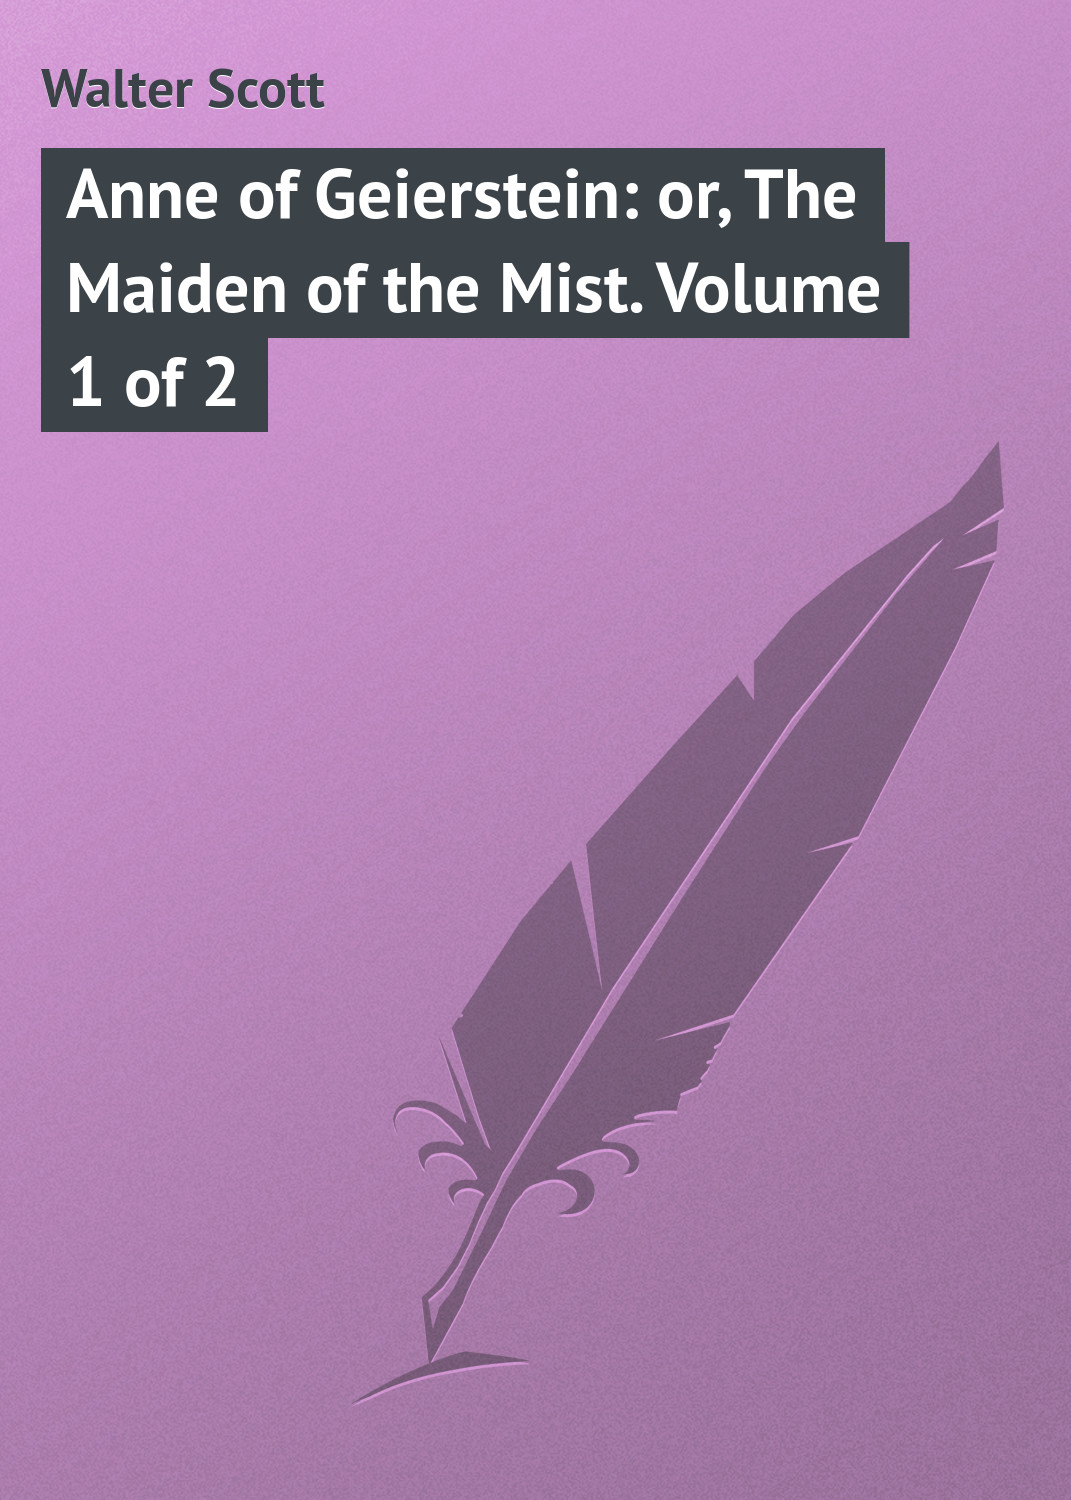 Walter Scott Anne of Geierstein: or, The Maiden of the Mist. Volume 1 of 2 de coster charles the legend of ulenspiegel volume 1 of 2